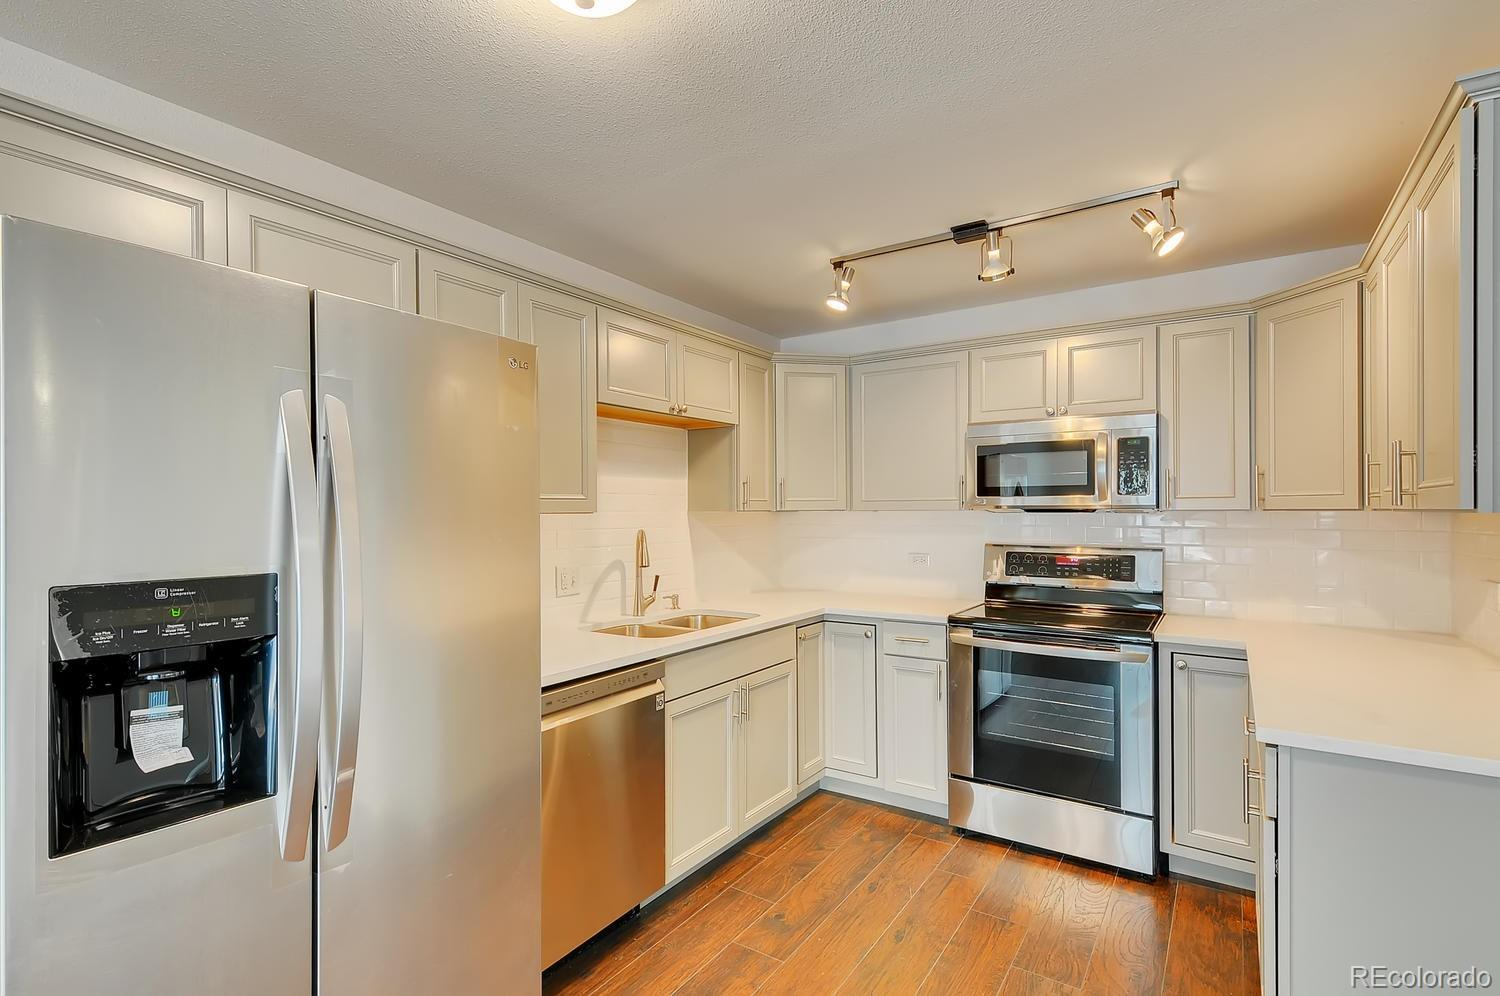 This one has it all! Ground floor unit and totally remodeled. Walk out from your Lanai into the green space. This building is tucked back off the road for ultimate serenity. The kitchen and bathrooms are all new as well as the flooring and paint! Nothing to do but move in. This price beats any of the 2 bed 2 bath in Windsor Gardens with this level of updating. Easy walk to the community center and golf course. Colorado's premier 55+ active adult community provides 24-hour community security, clubhouse with indoor & outdoor pools, hot tub, sauna, activities, clubs, Golf course & restaurant open to the public. Monthly HOA dues include annual property taxes, water, sewer, heat & trash. Centrally located to everything. FHA & VA approved! Short walk to Highline Canal and Windsor Lake.